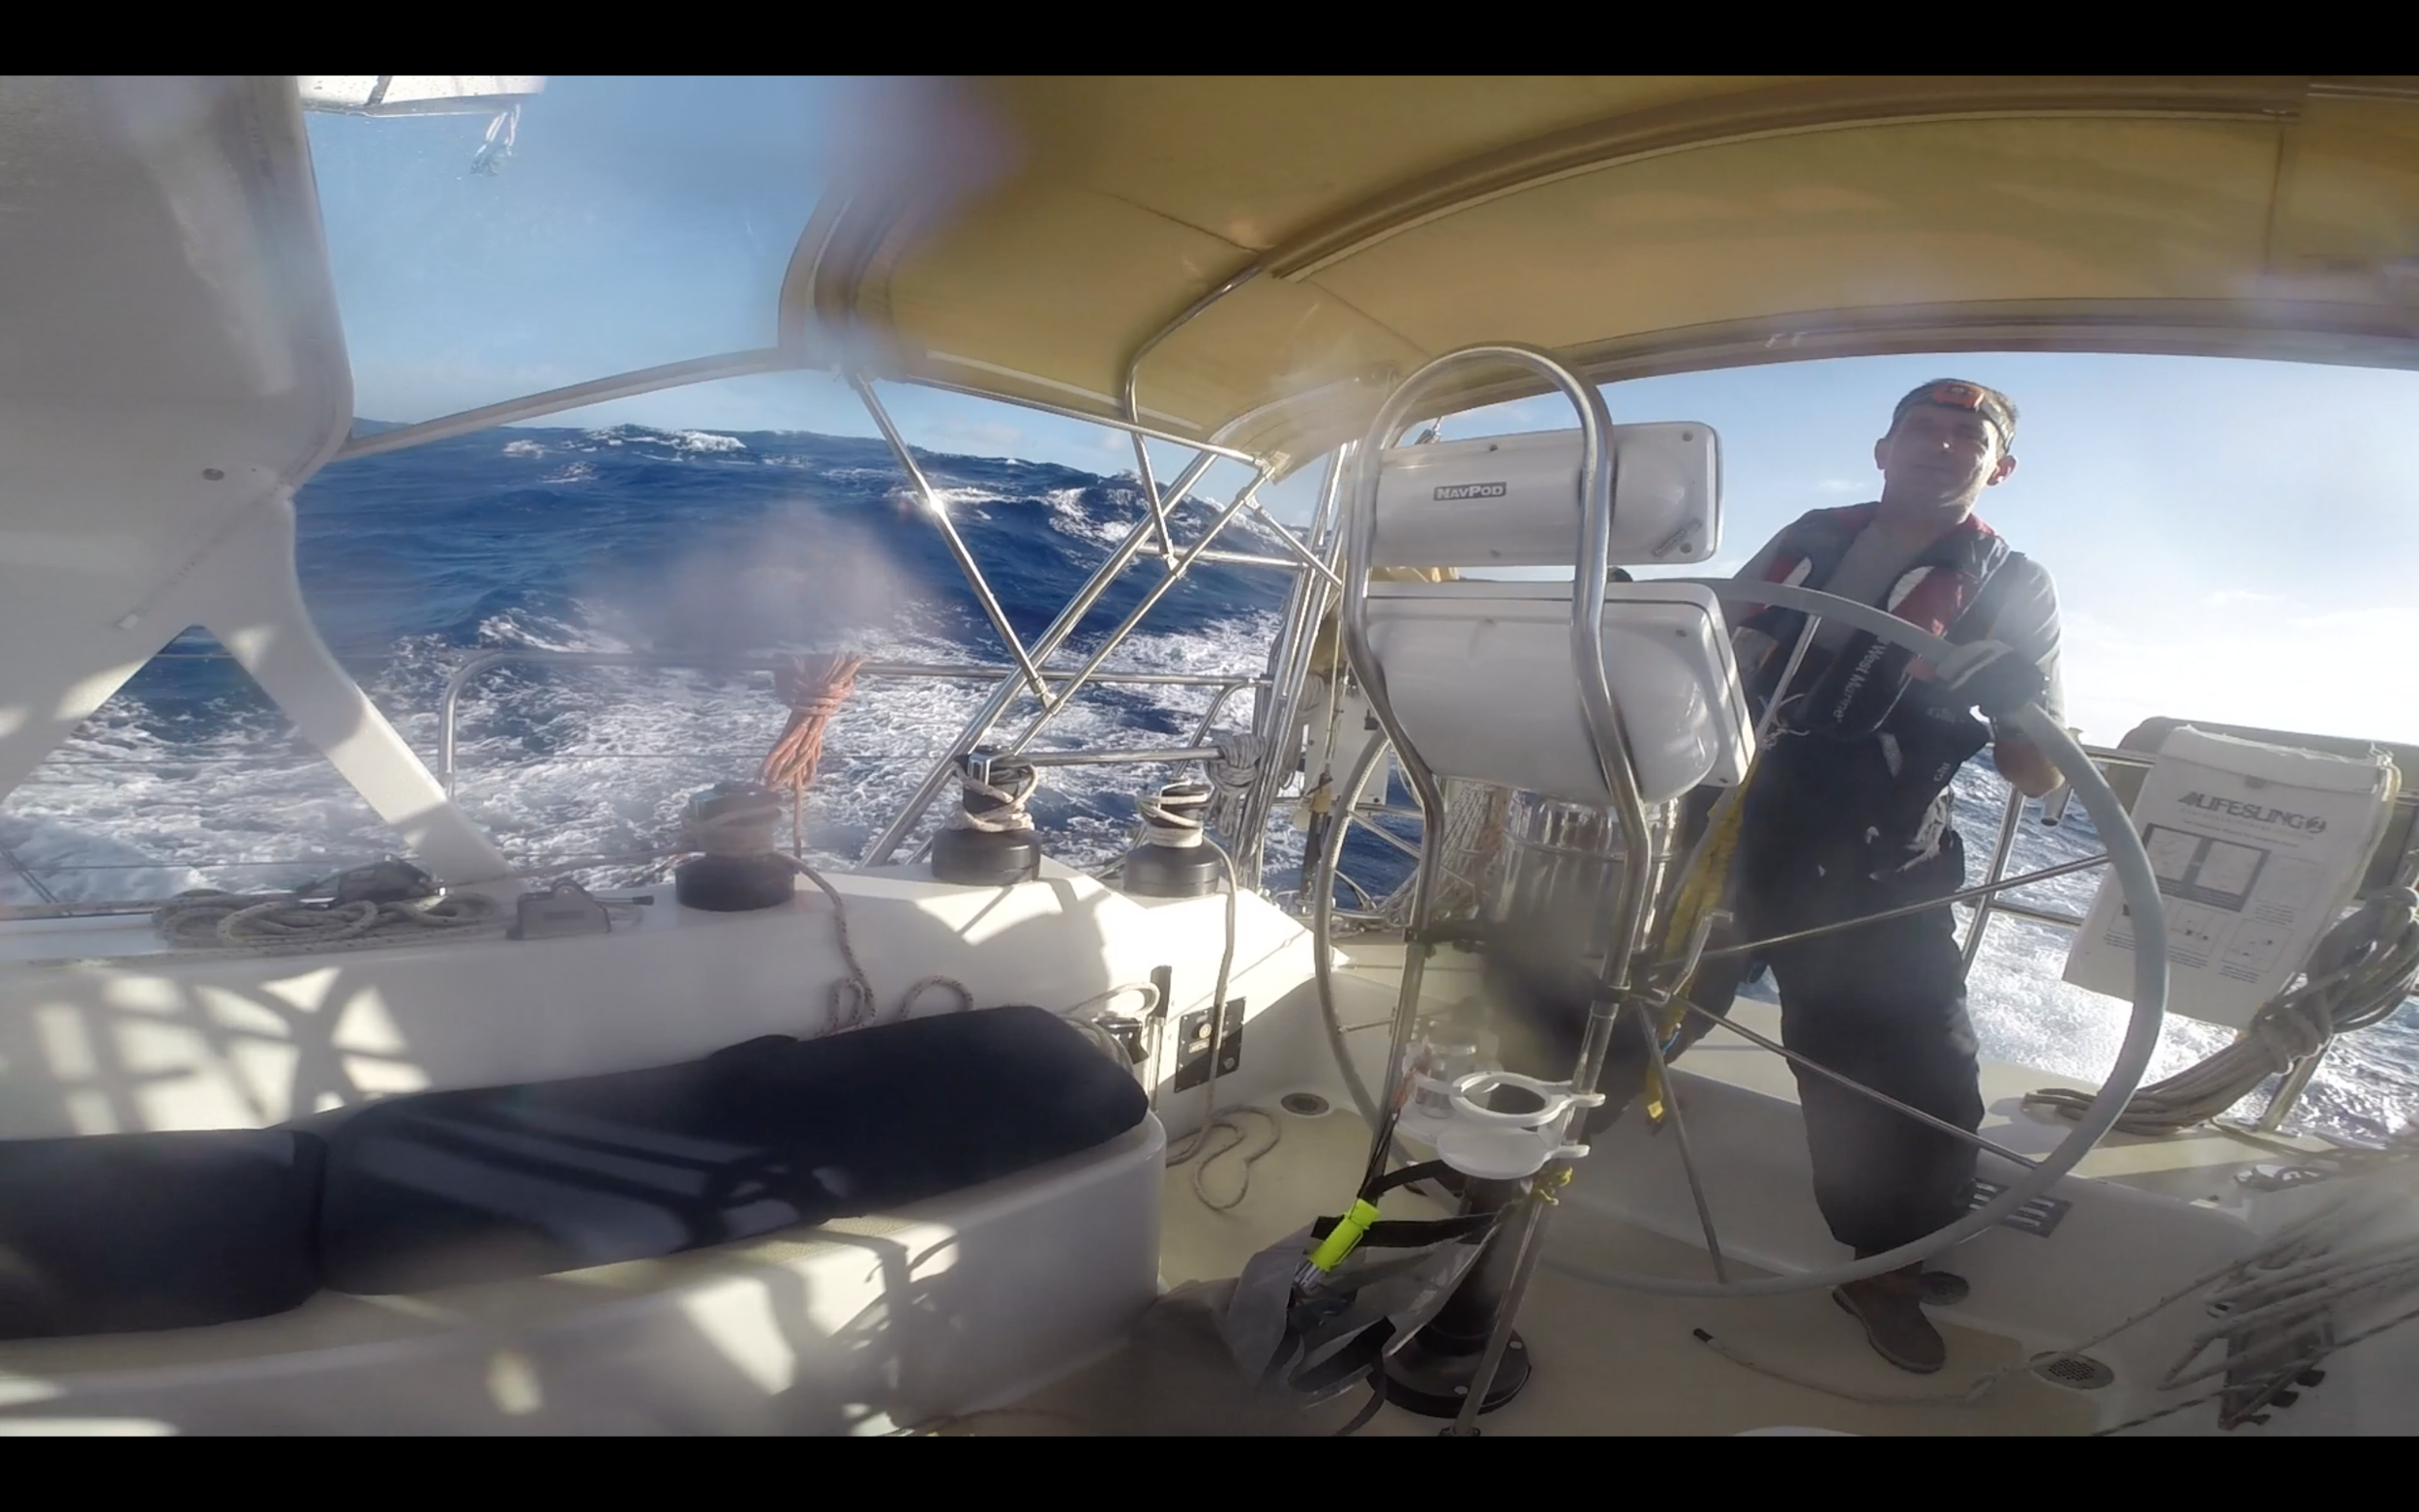 At the helm in high wind and big seas!